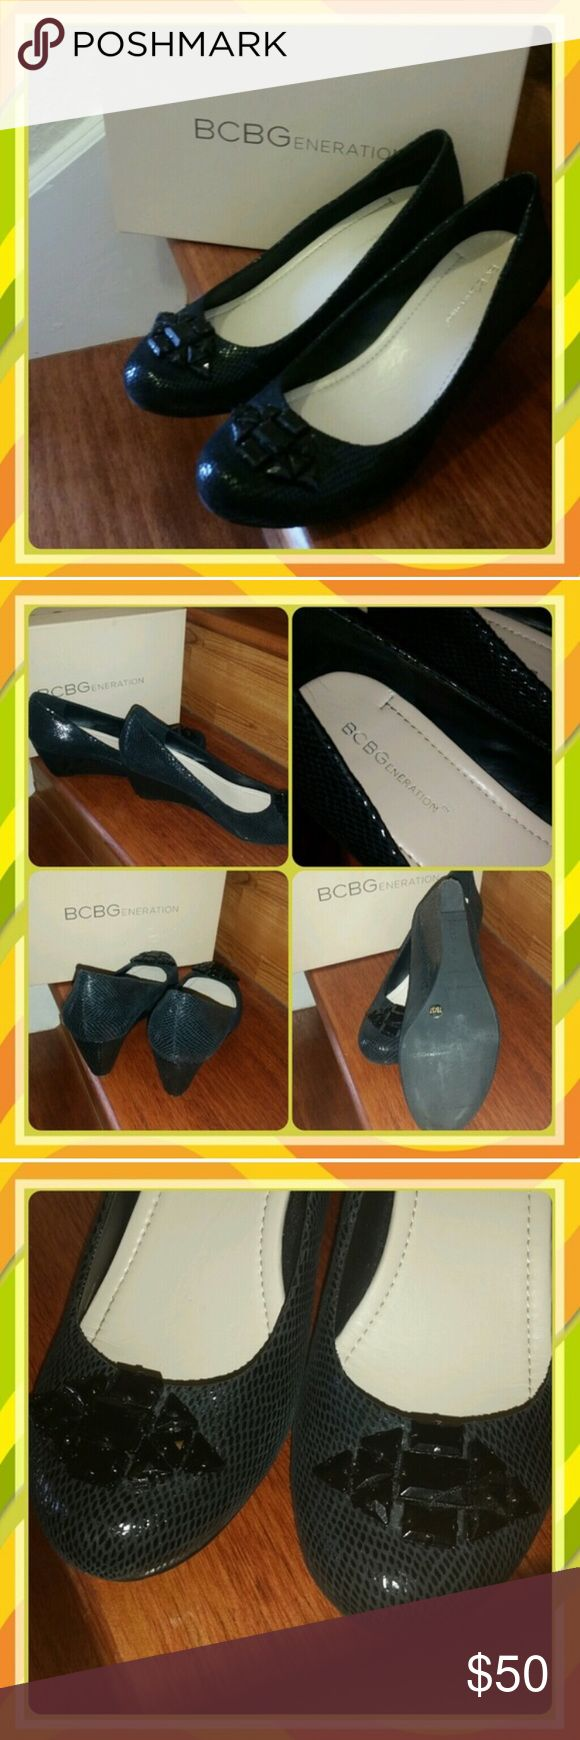 BCBGENERATION TREESE WEDGE PUMP Beautiful and stylish! Excellent pre-owned condition, Treese wedge pump in black snakeskin suede, will compliment any outfit. Size: 7, color: black, beautiful ornament on front, BCBGeneration Shoes Wedges